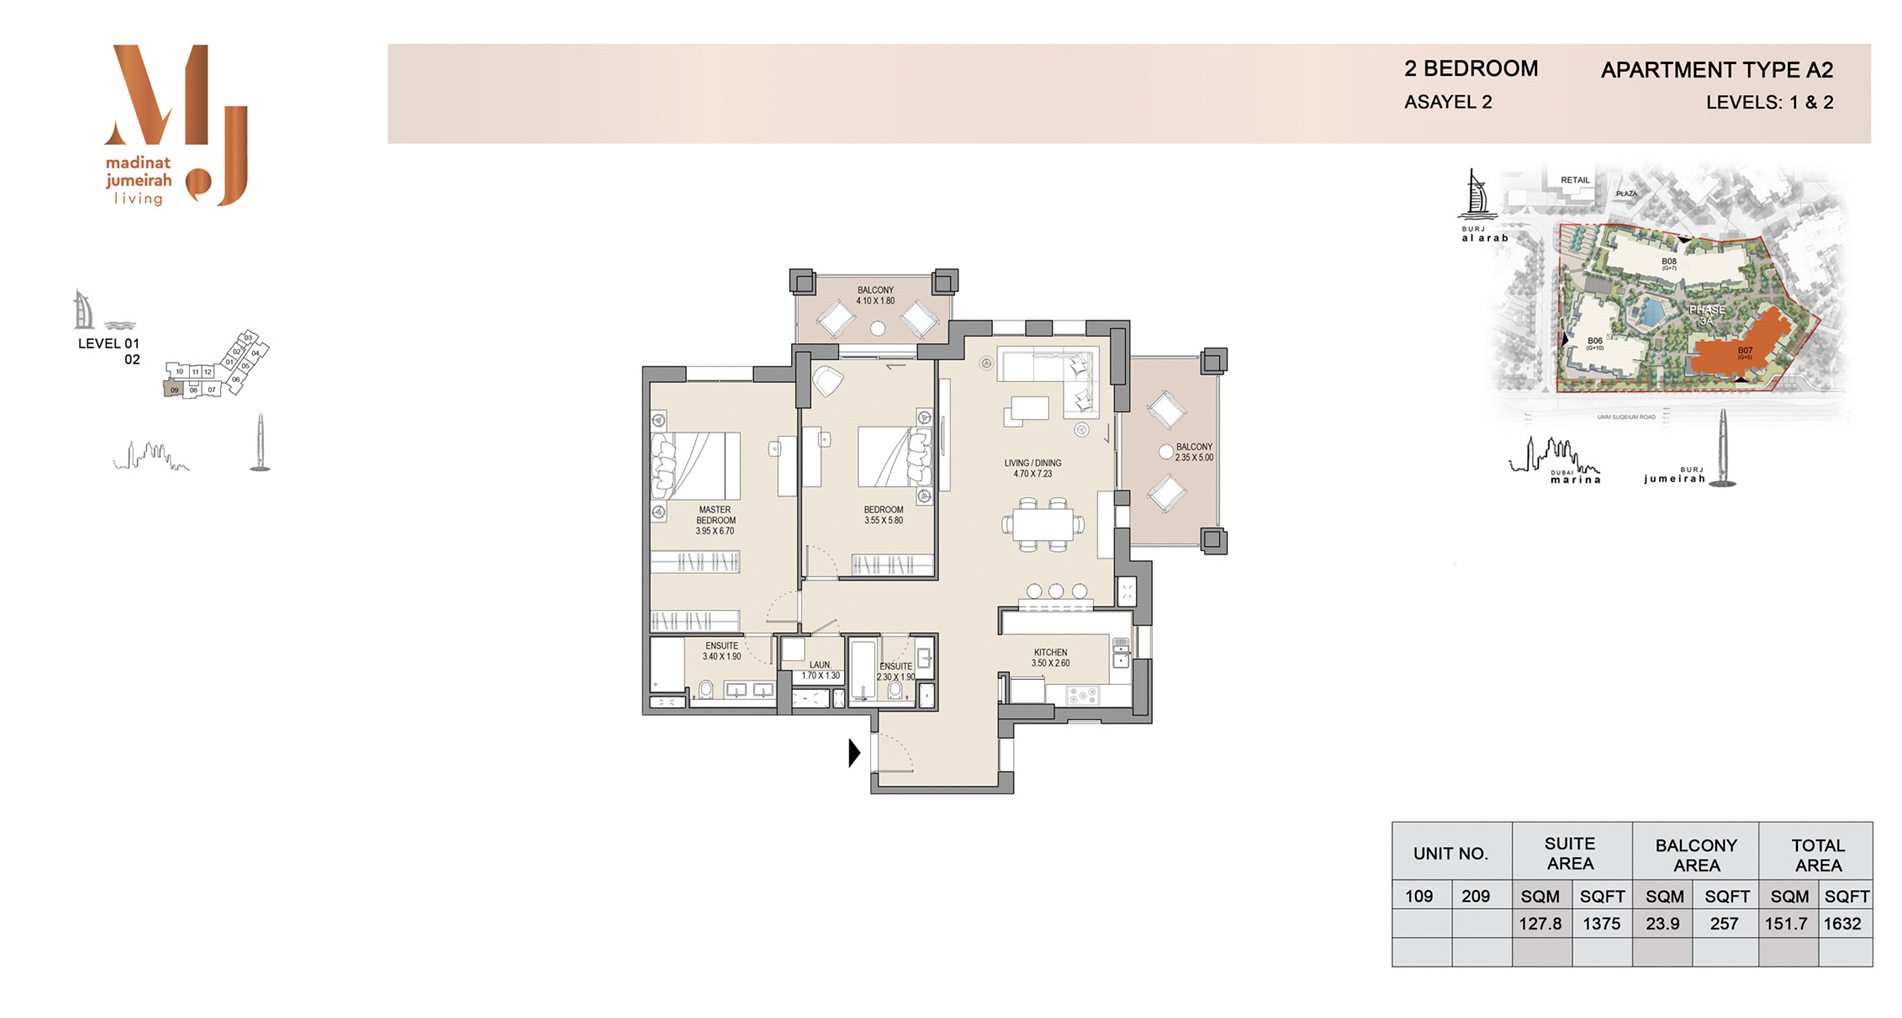 Building 2, 2 Bed Type A2 Level 1 to 2, Size 1632    sq. ft.